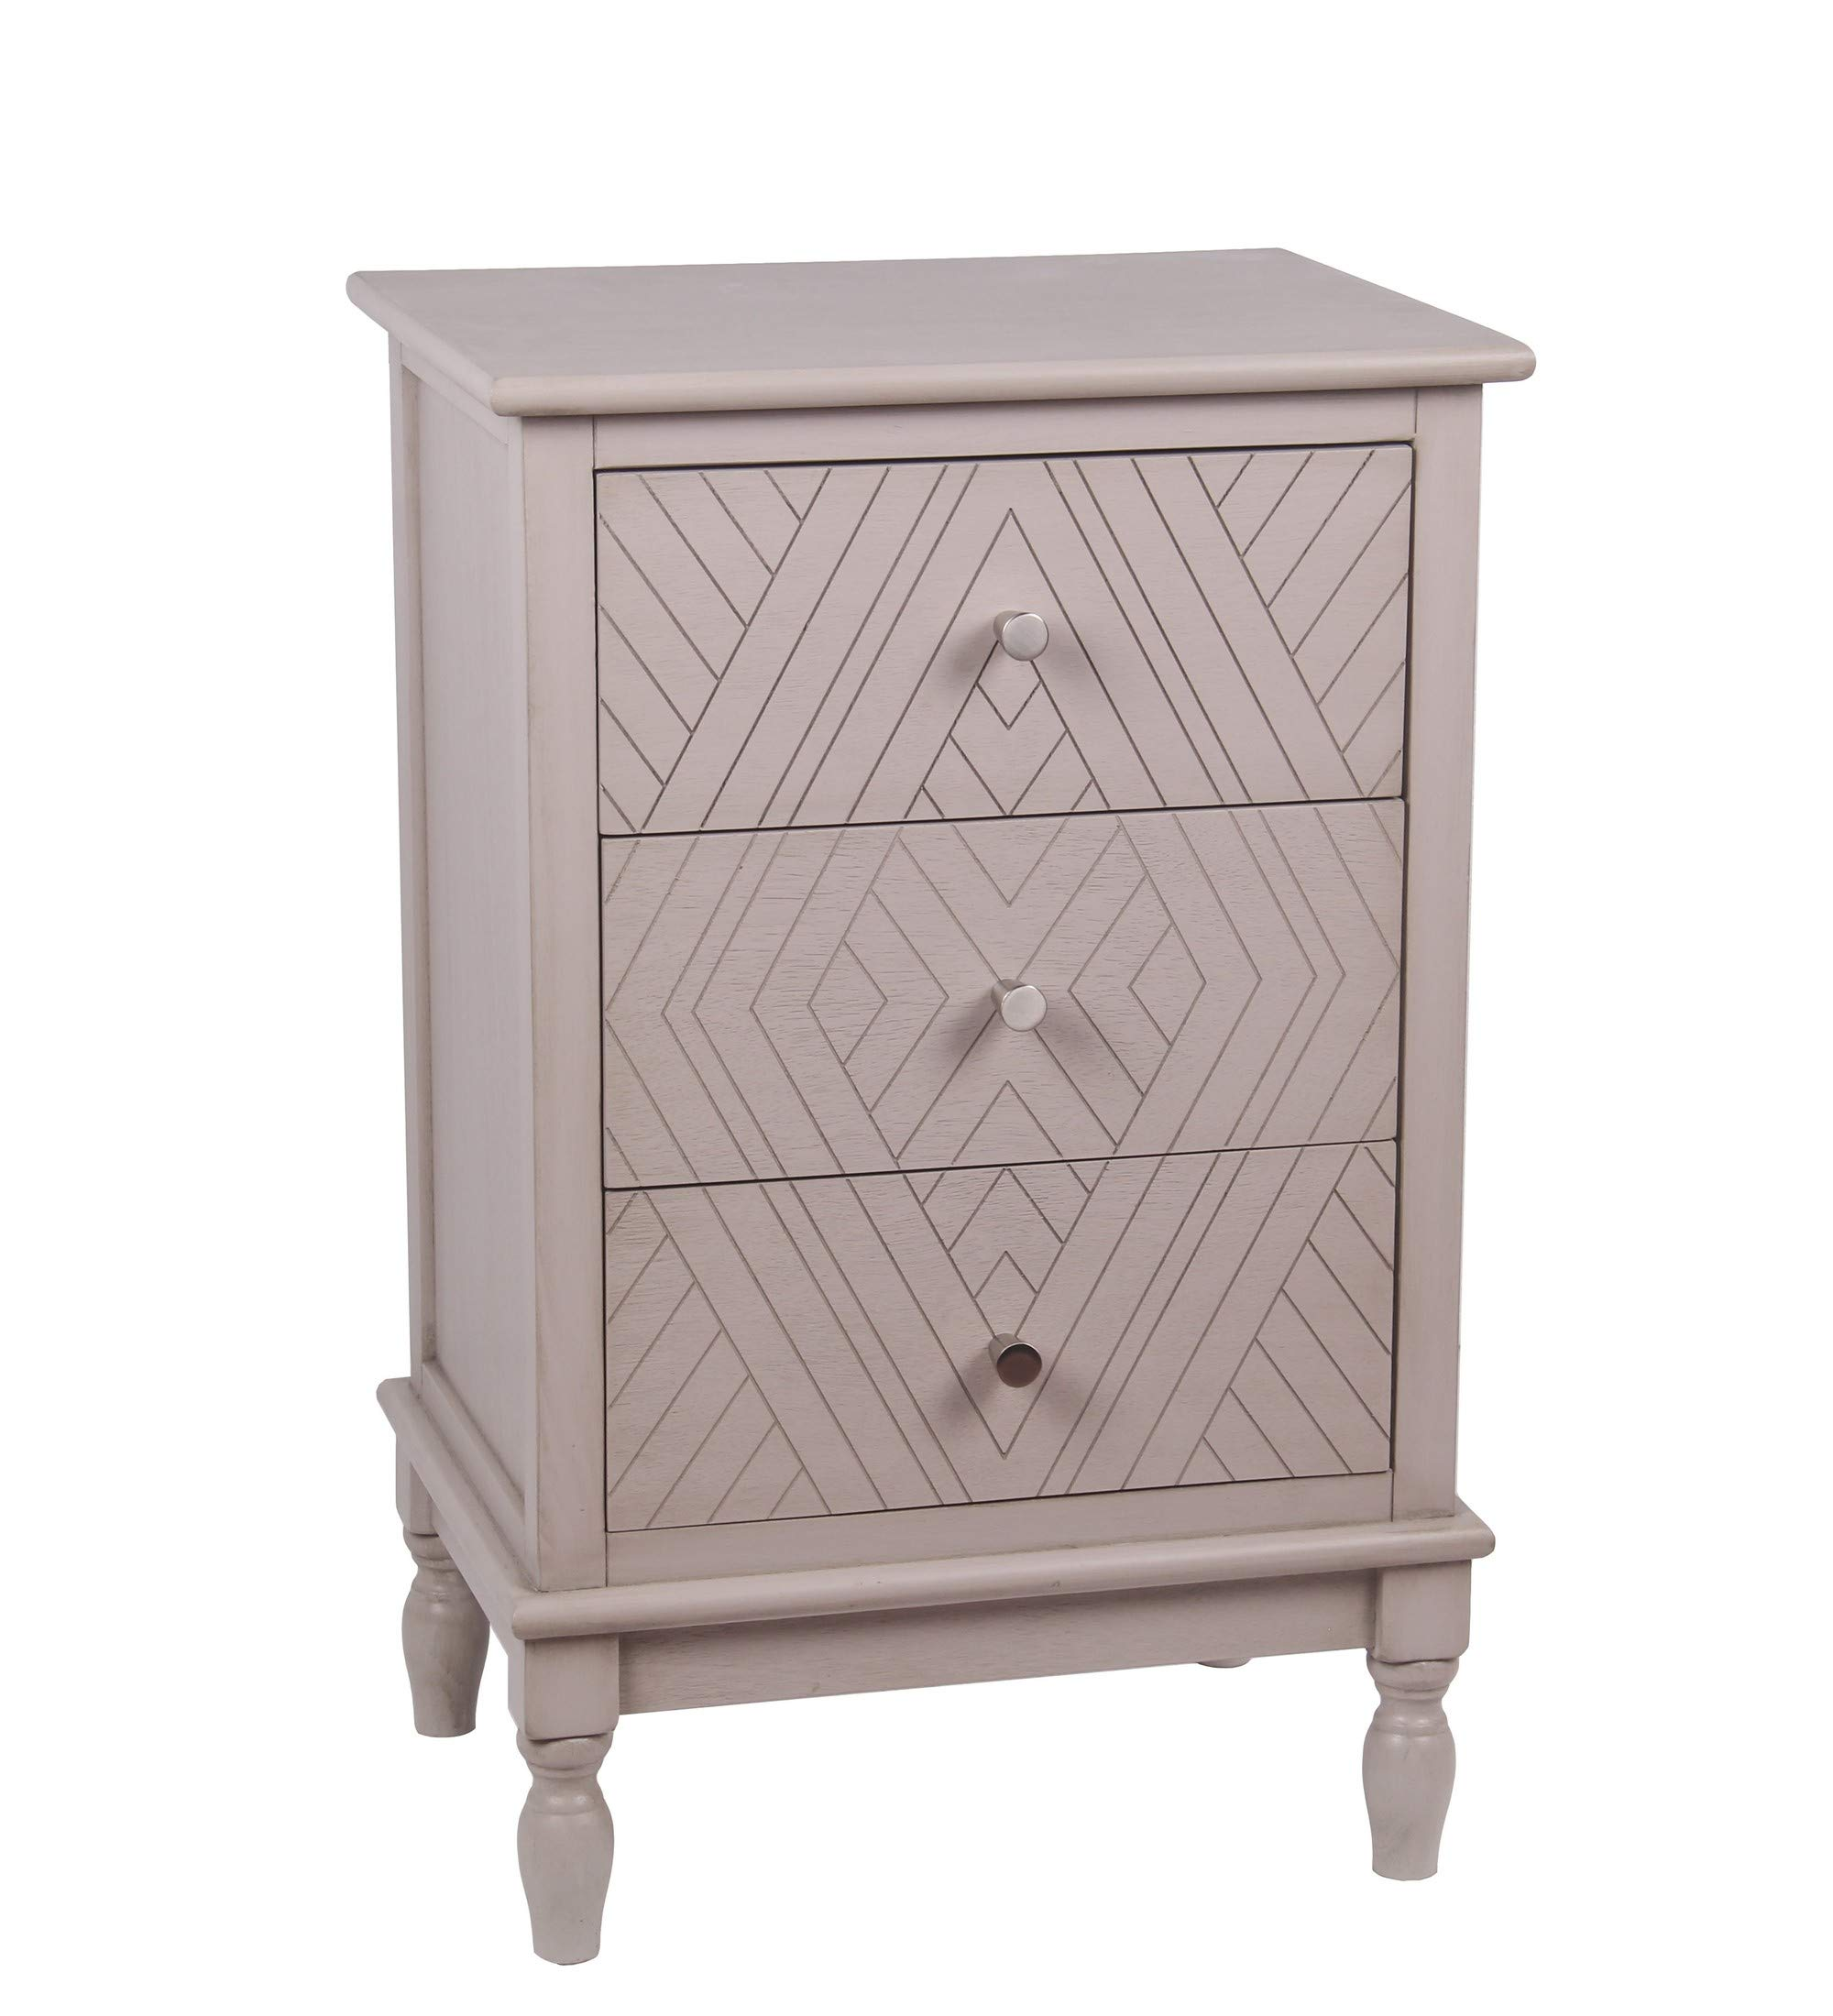 Privilege Weston 3 Drawer Accent Chest 28647 by Privilege